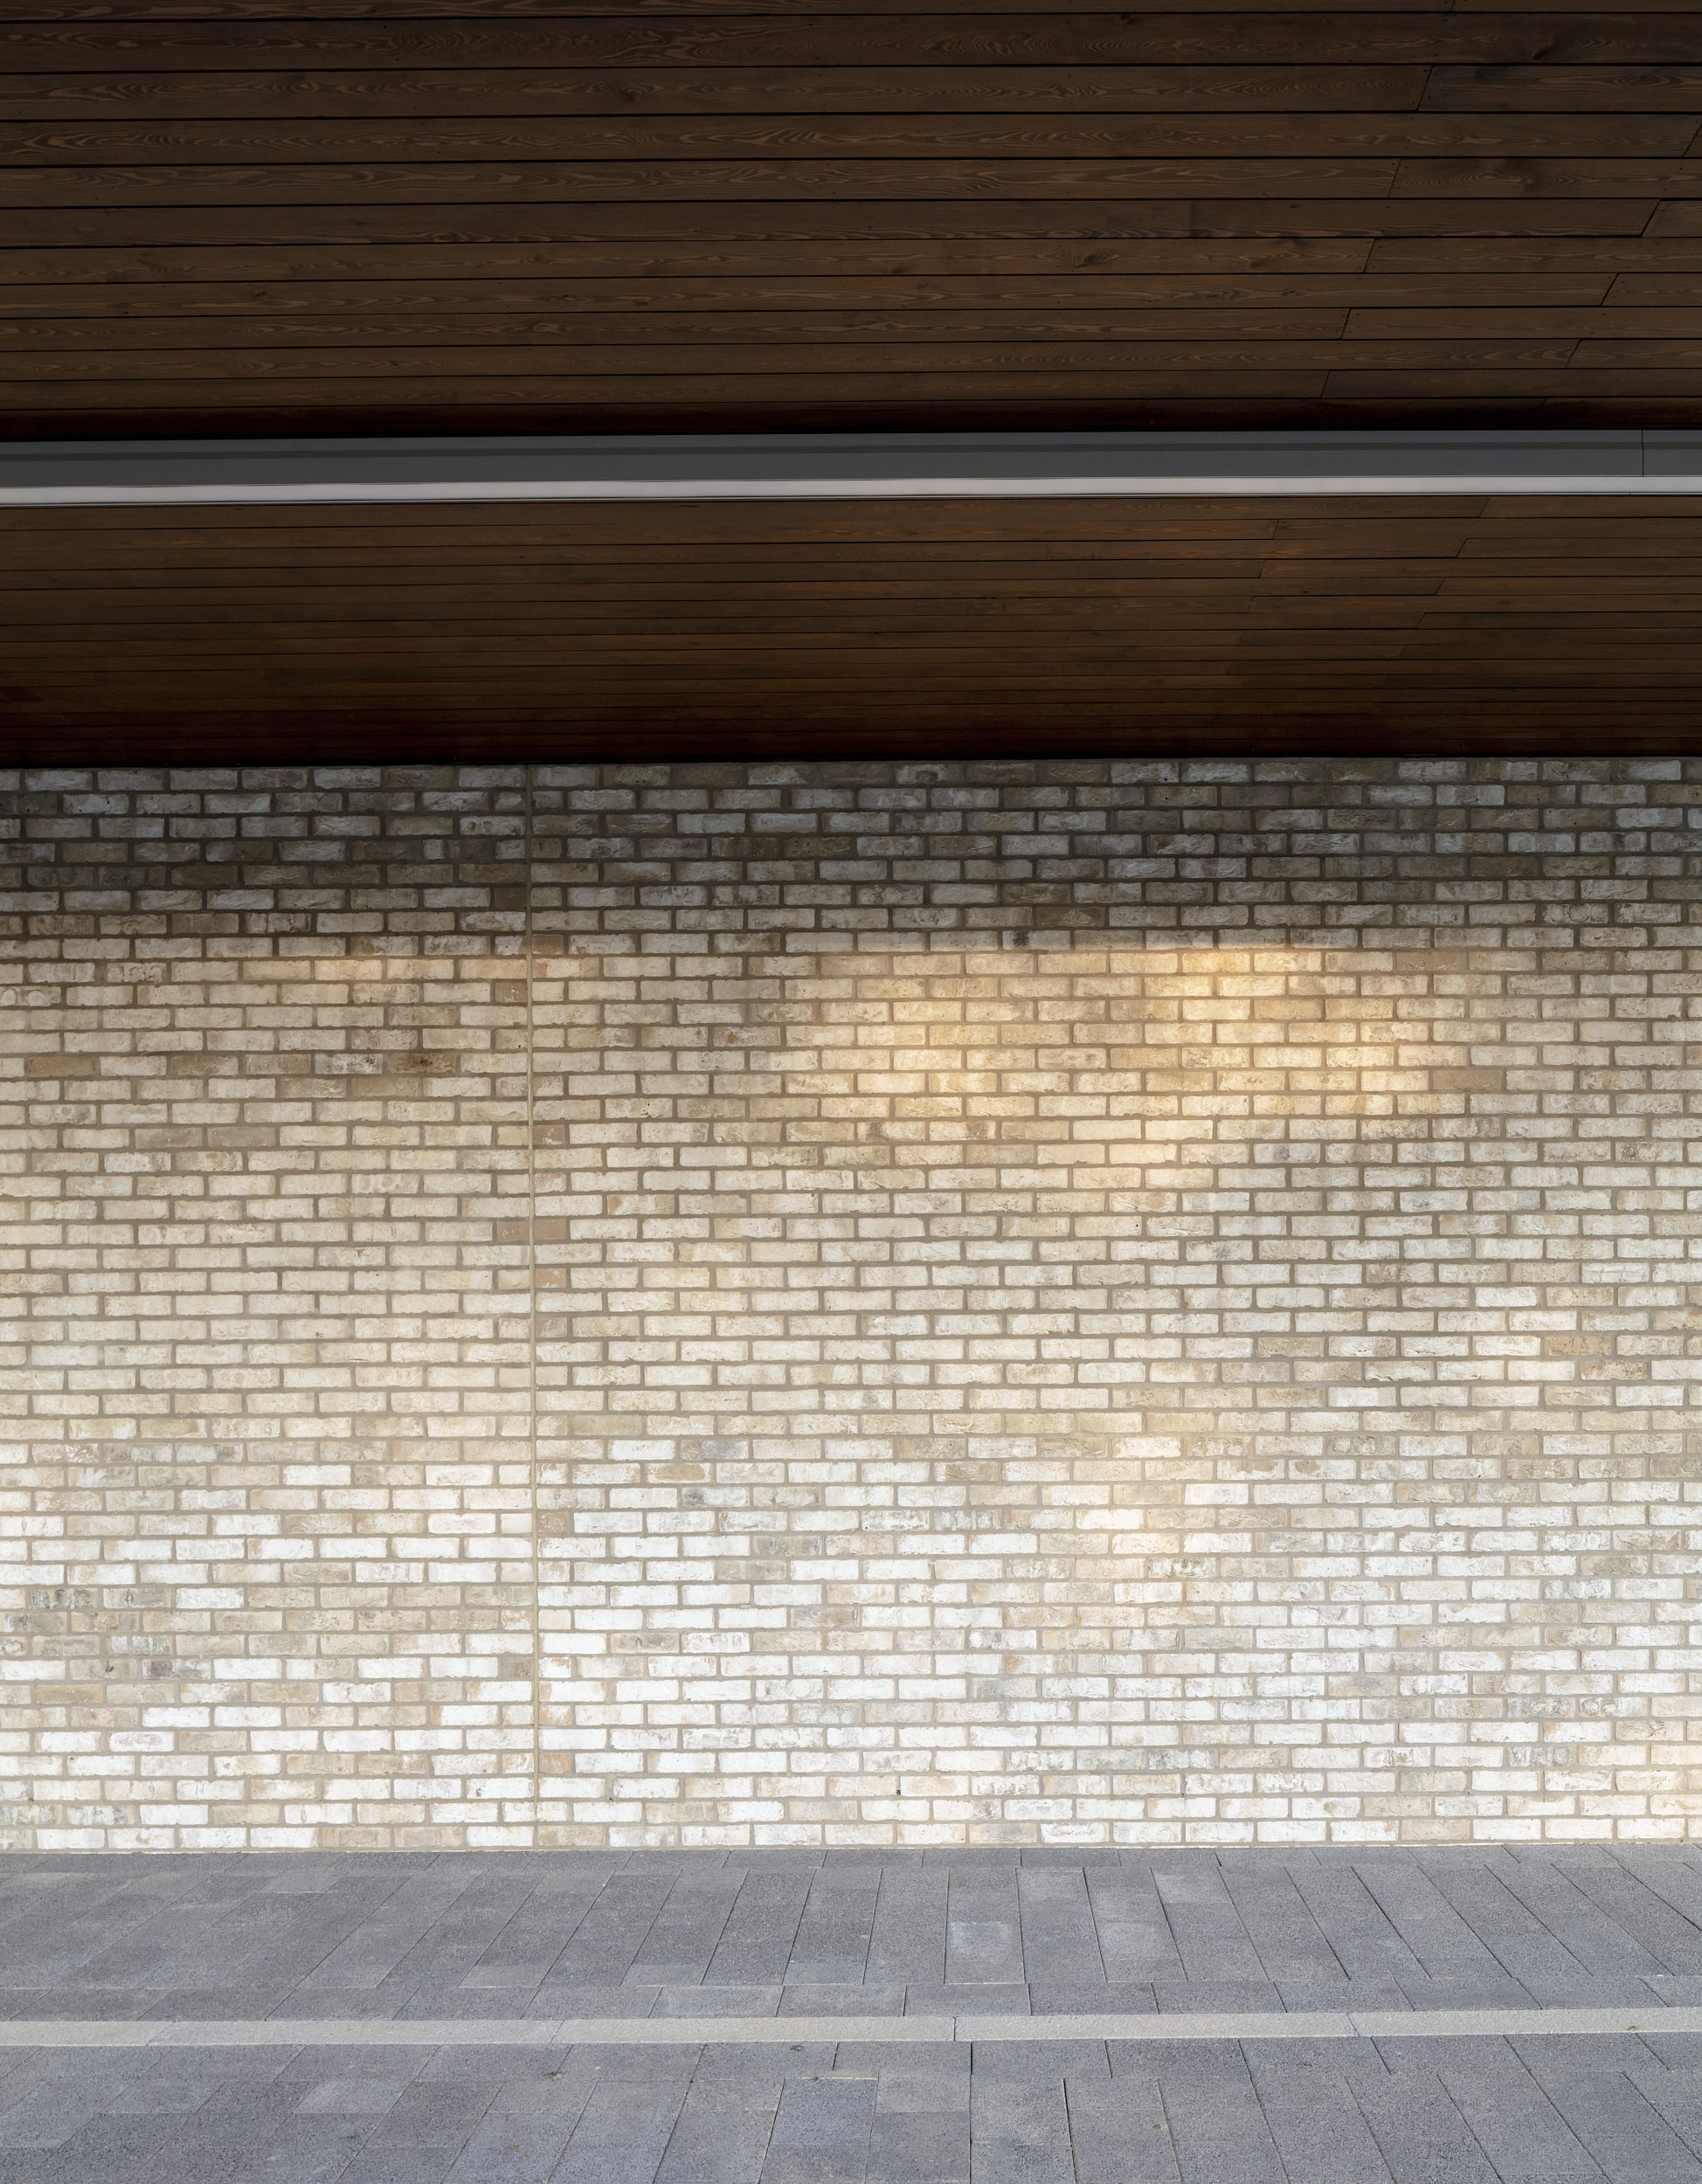 Detail photograph showing beautifully controlled materials and light fittings.